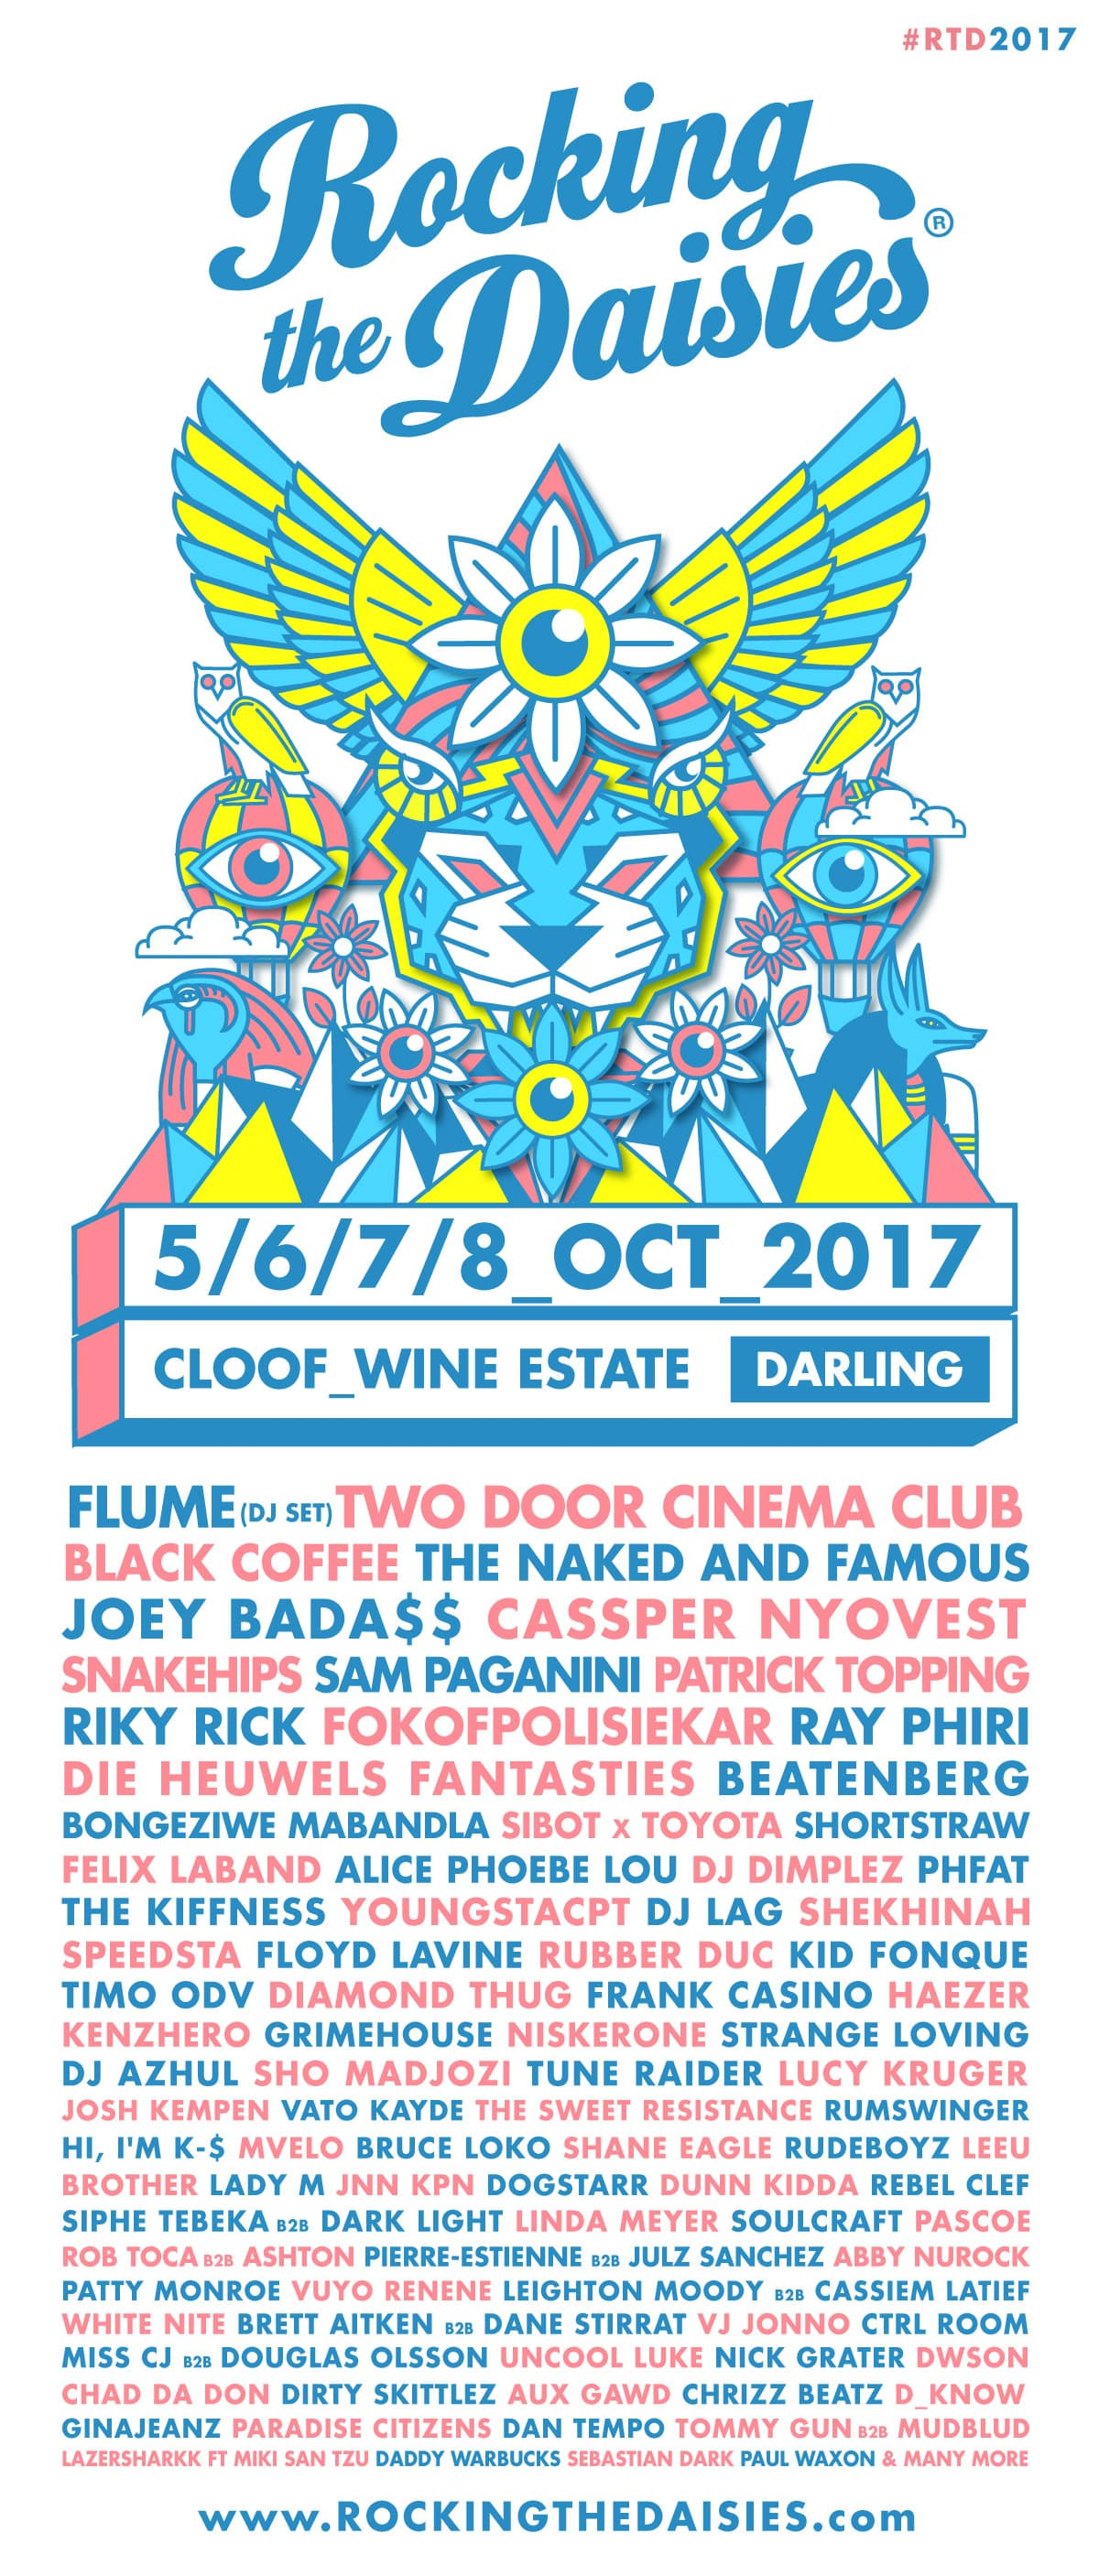 Full line-up for Rocking the Daisies 2017 announced.